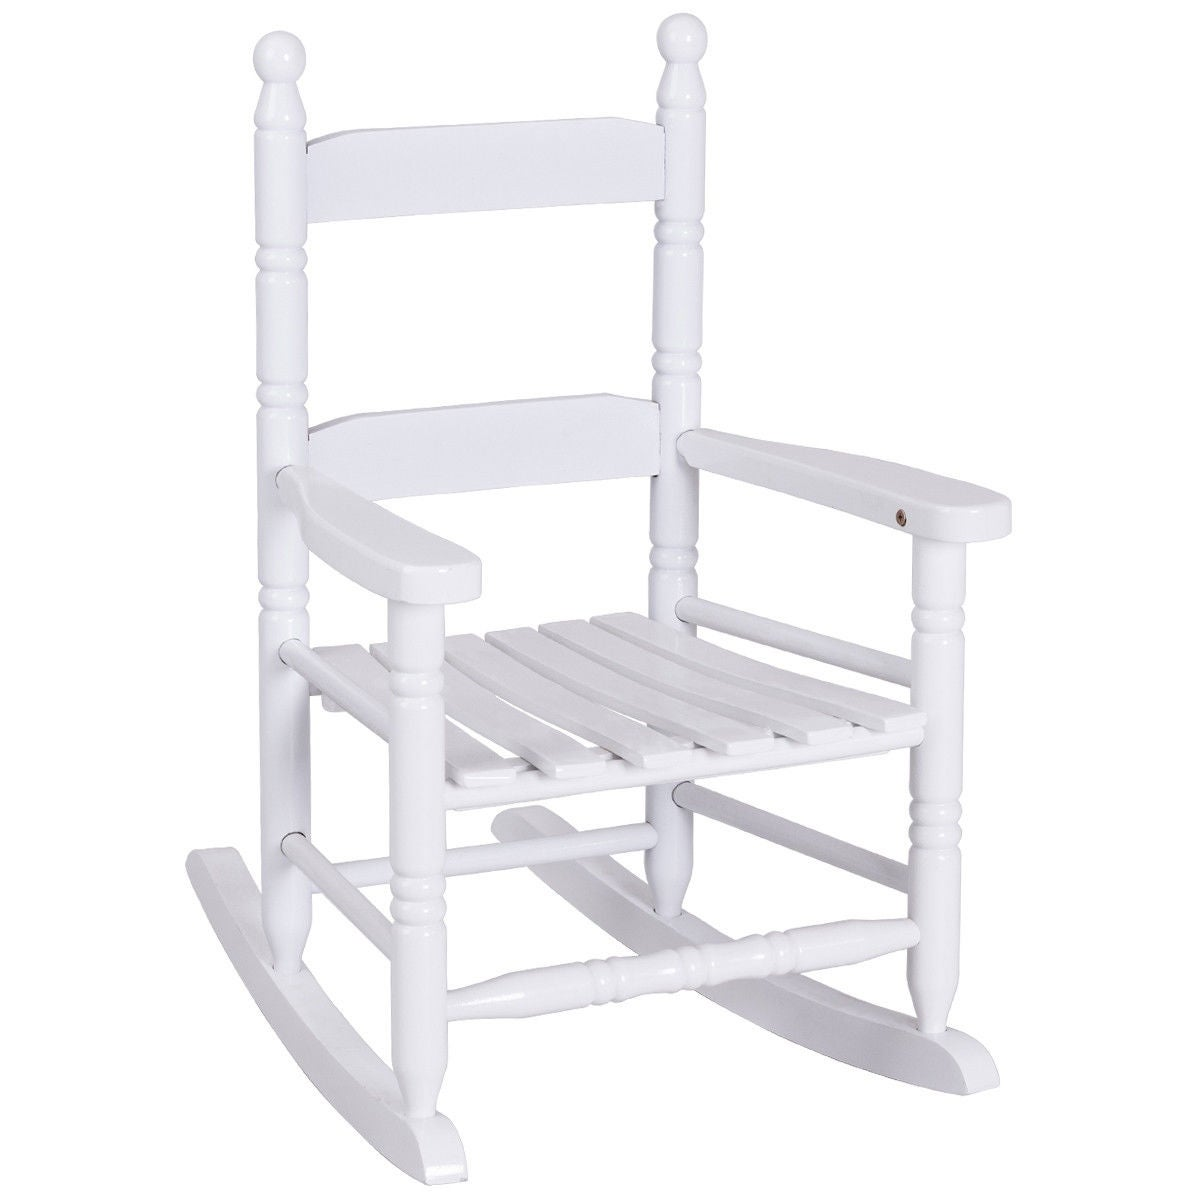 Shop Costway Classic White Wooden Children Kids Rocking Chair Slat Back  Furniture   Free Shipping Today   Overstock   18299577